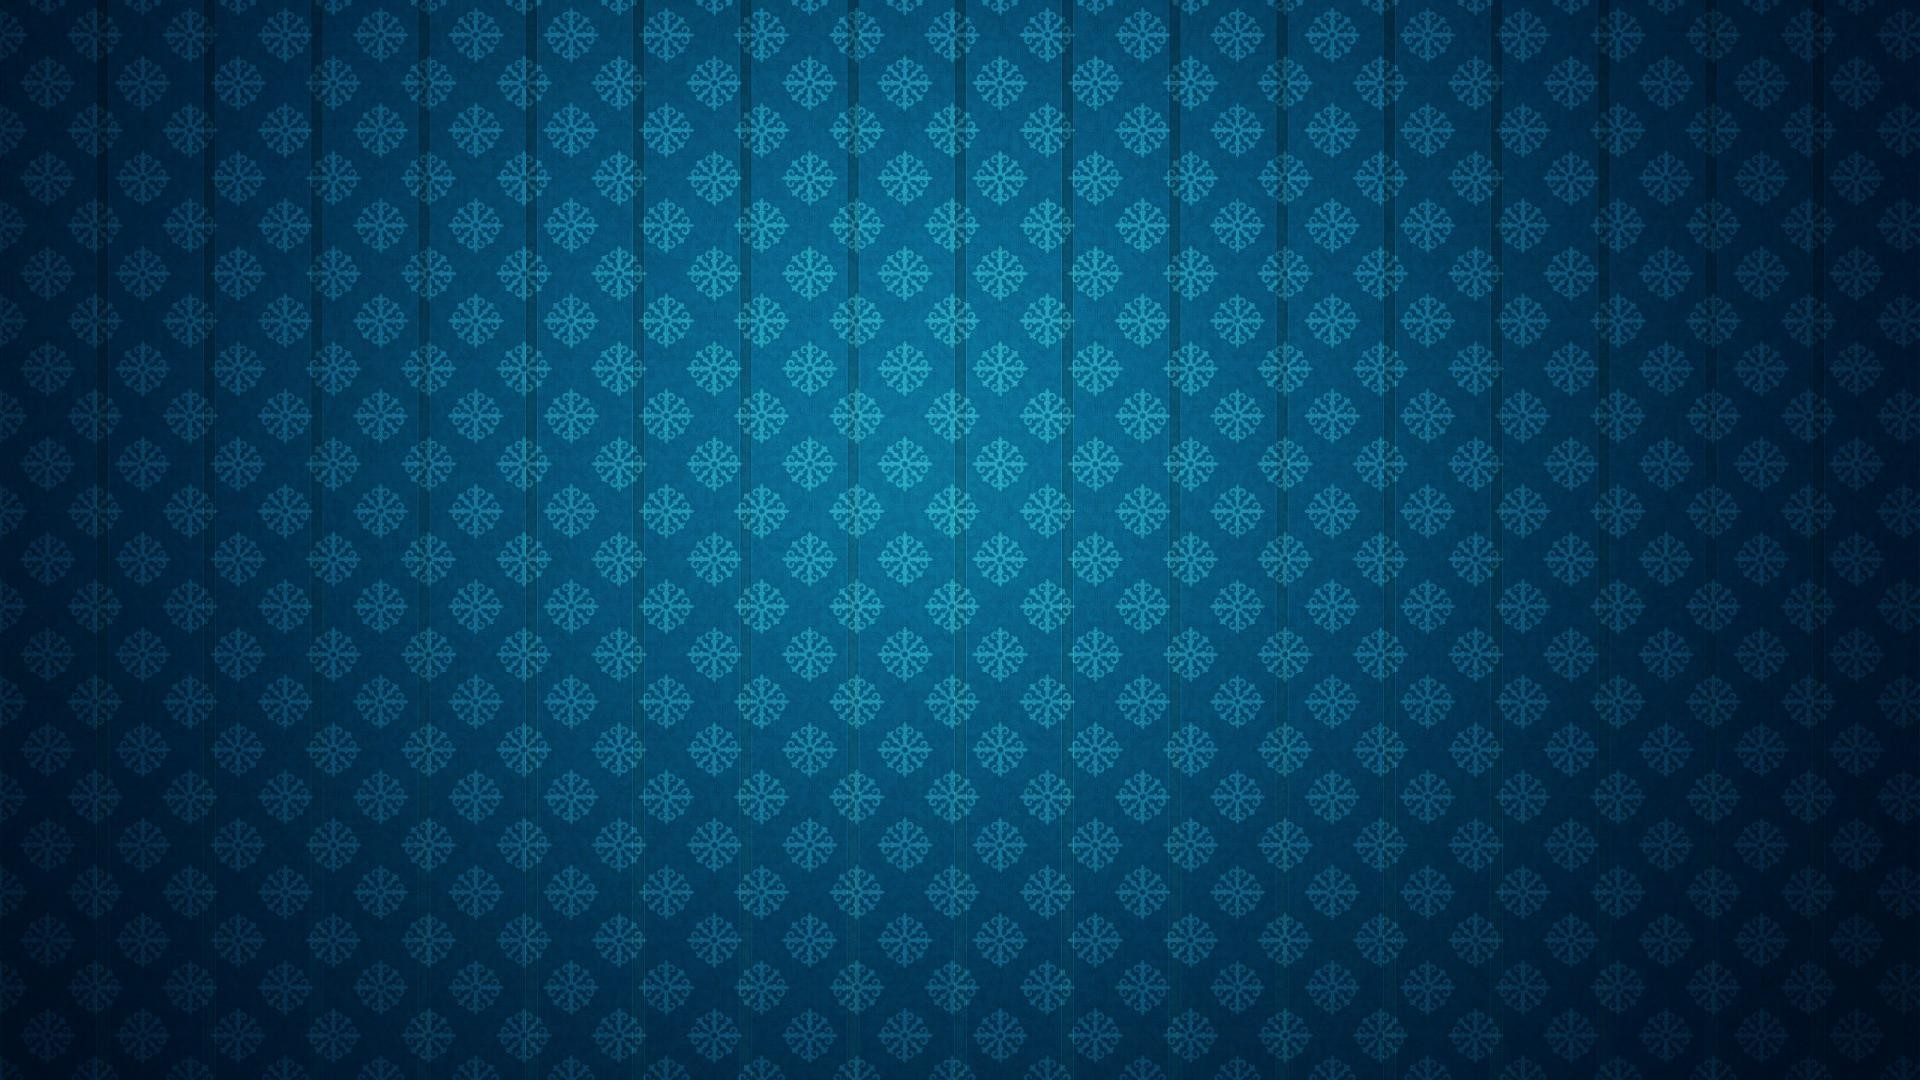 Design background ·â' Download free cool HD backgrounds for